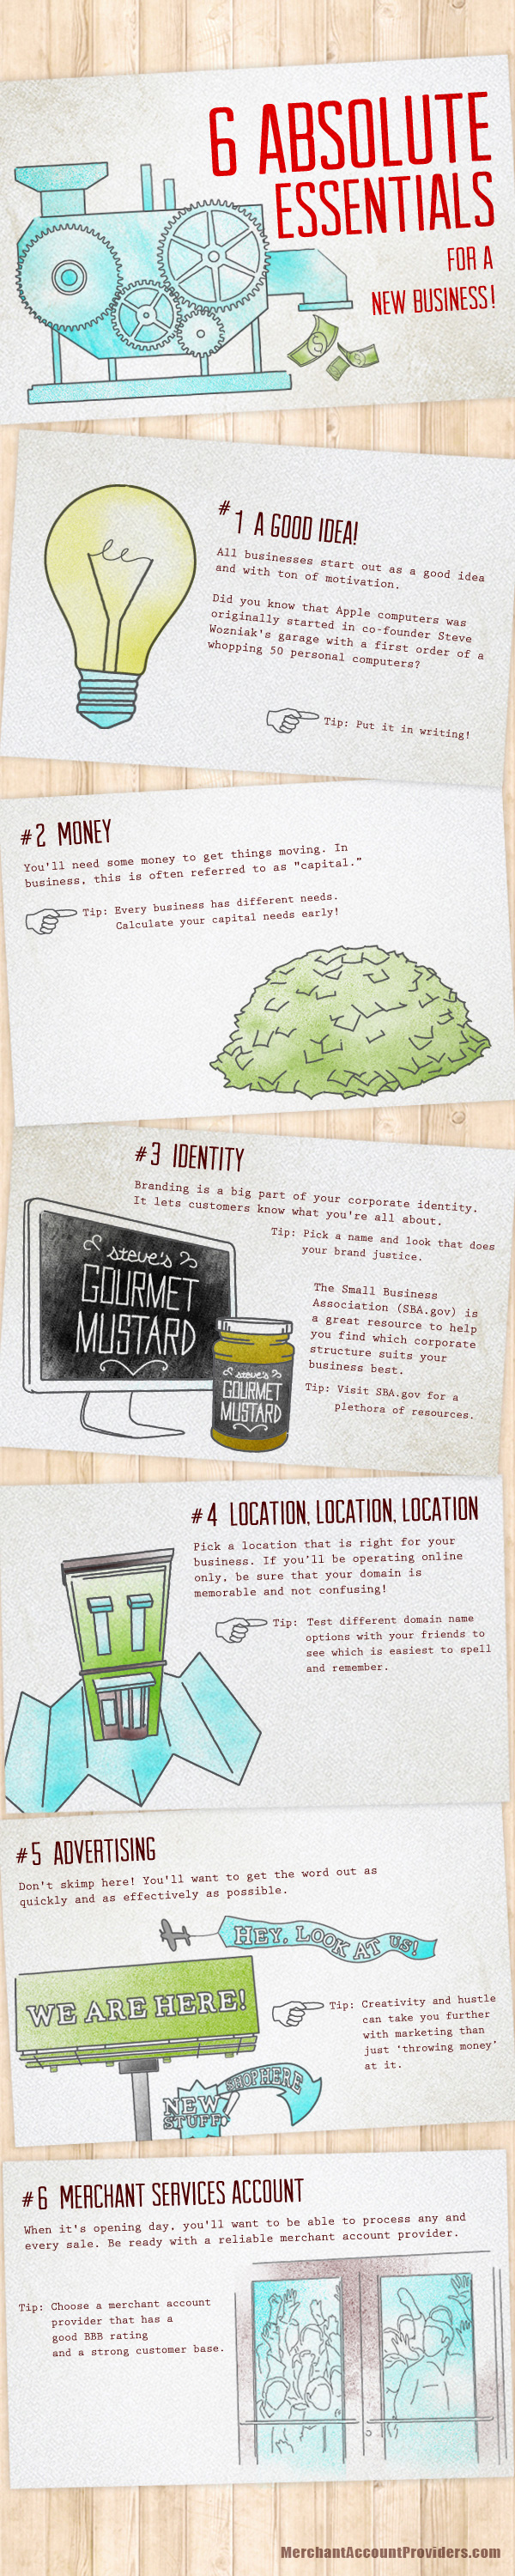 absolute-essentials-for-starting-a-business-infographic